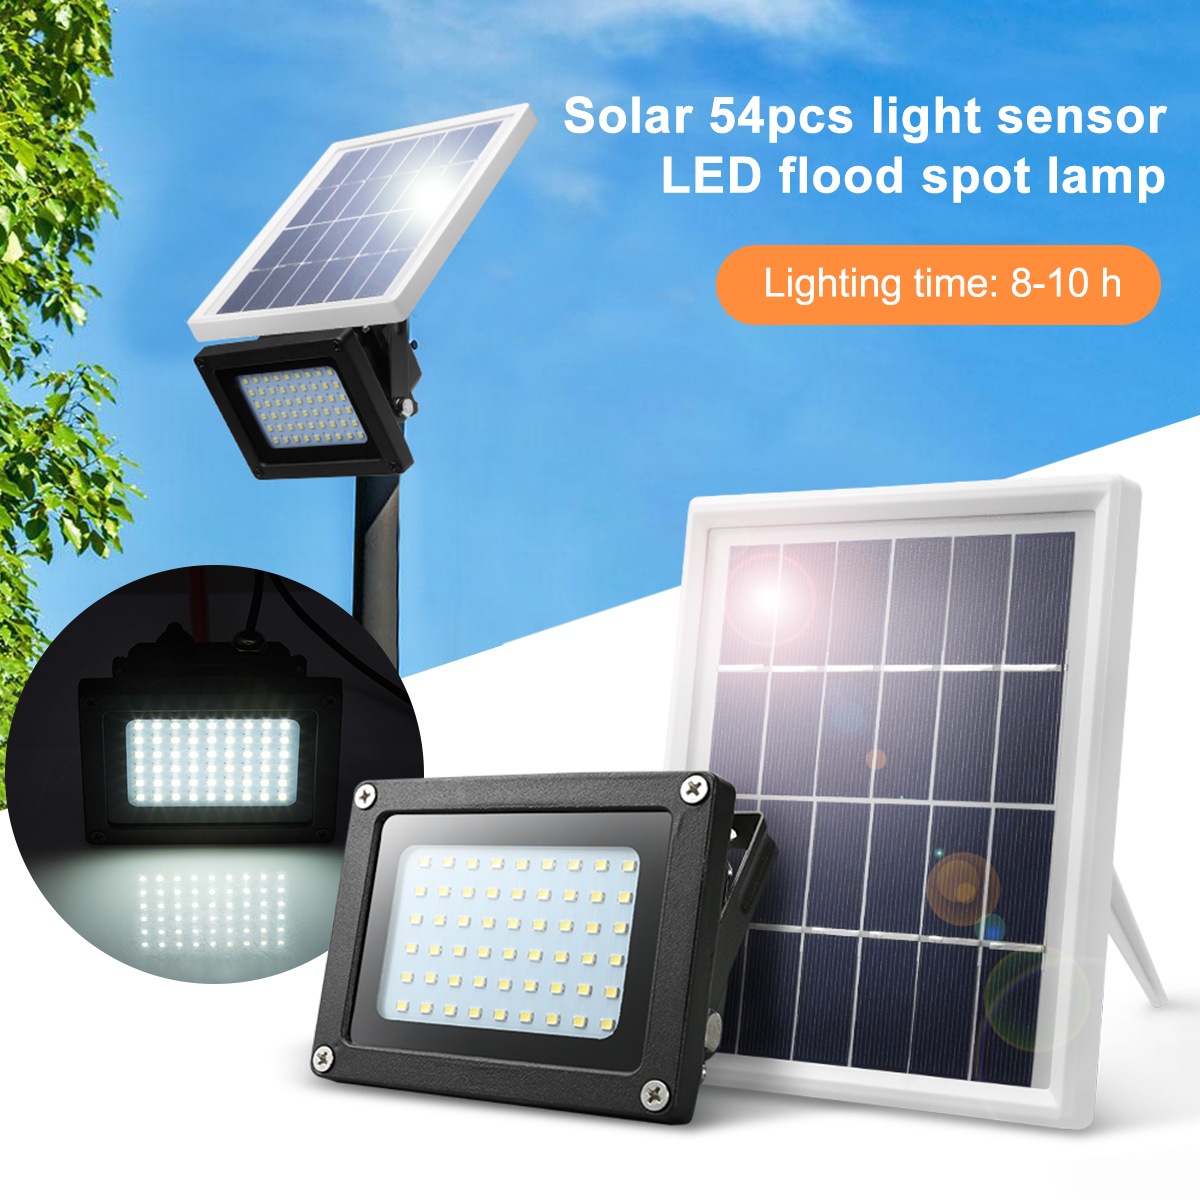 Details About 2pcs 400lm 54 Leds Solar Ed Security Light Outdoor Floodlight Dusk To Dawn